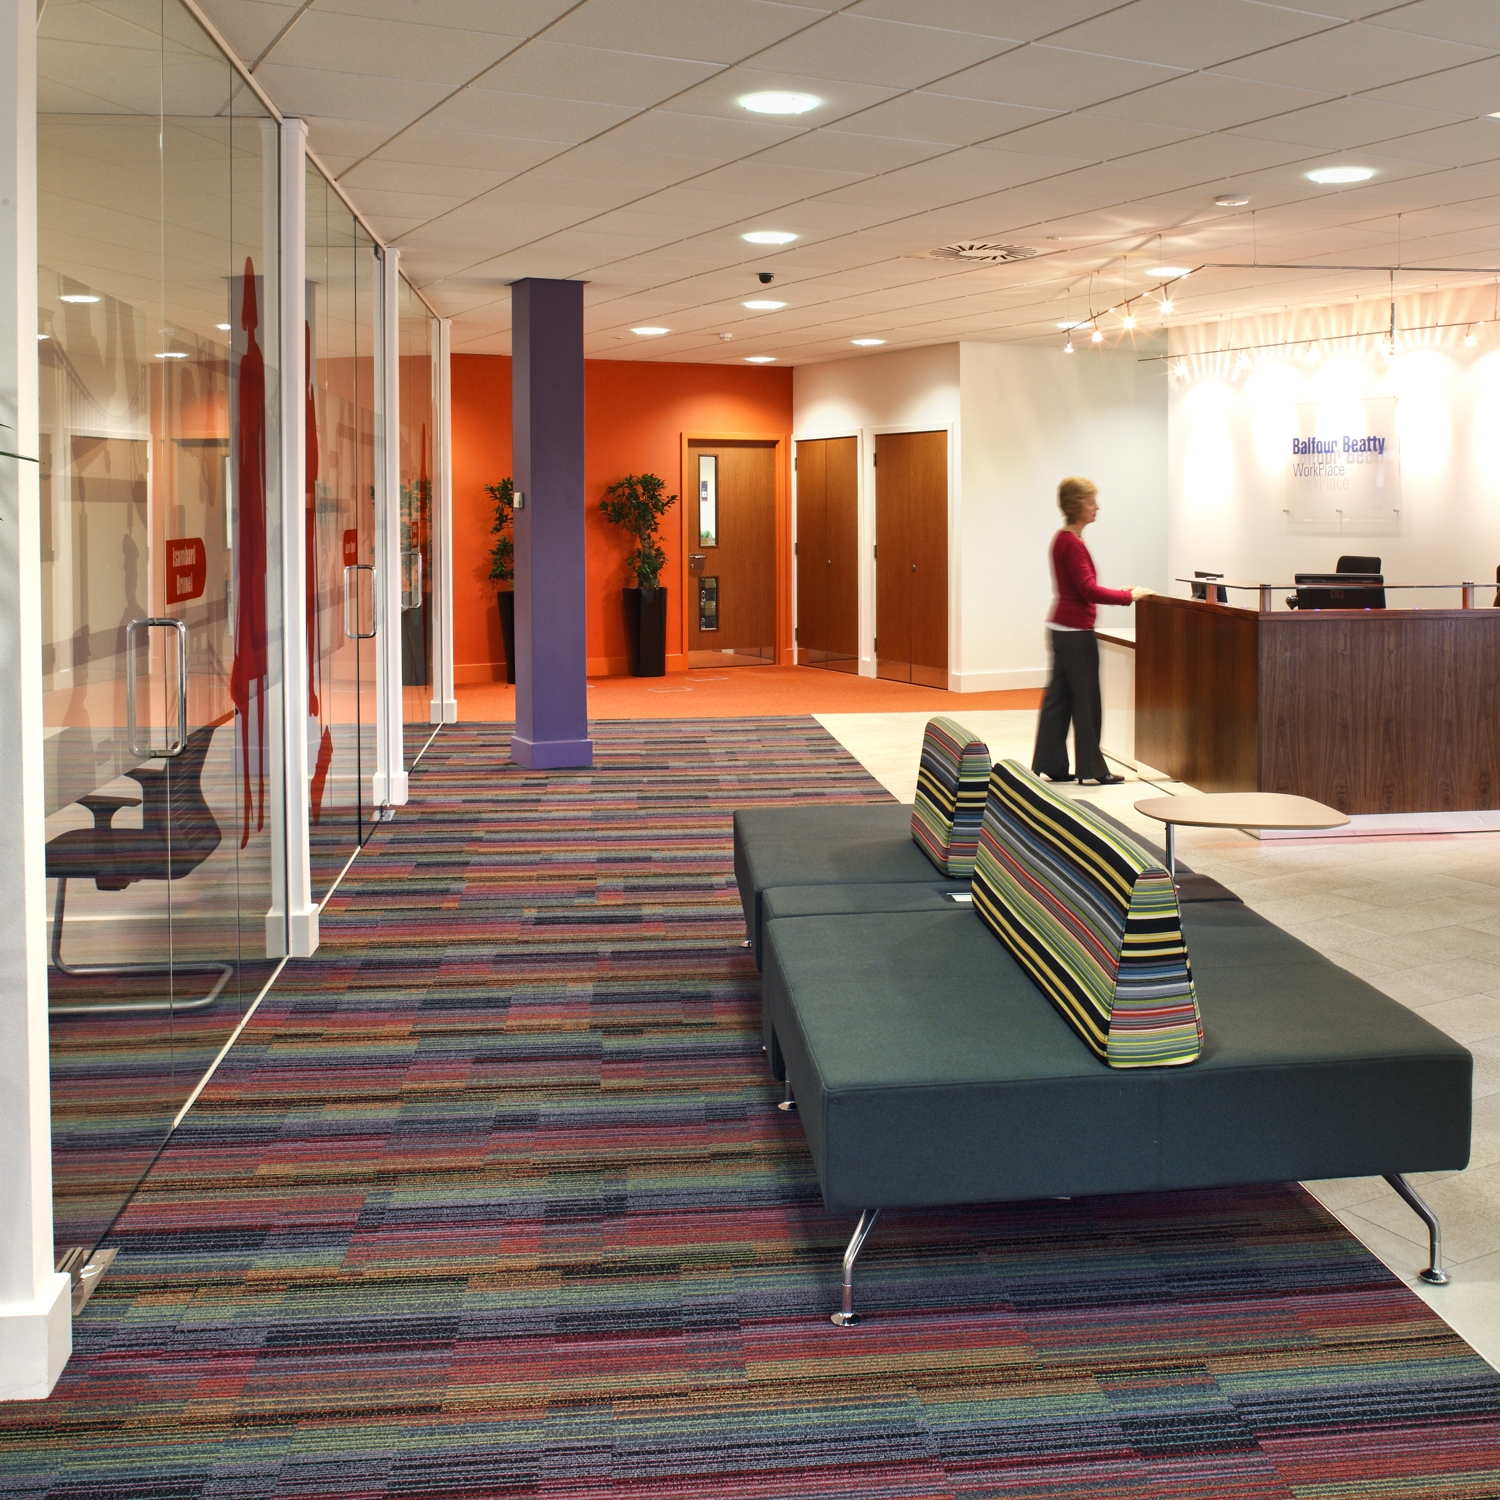 Balfour beatty business interiors for Office design bristol